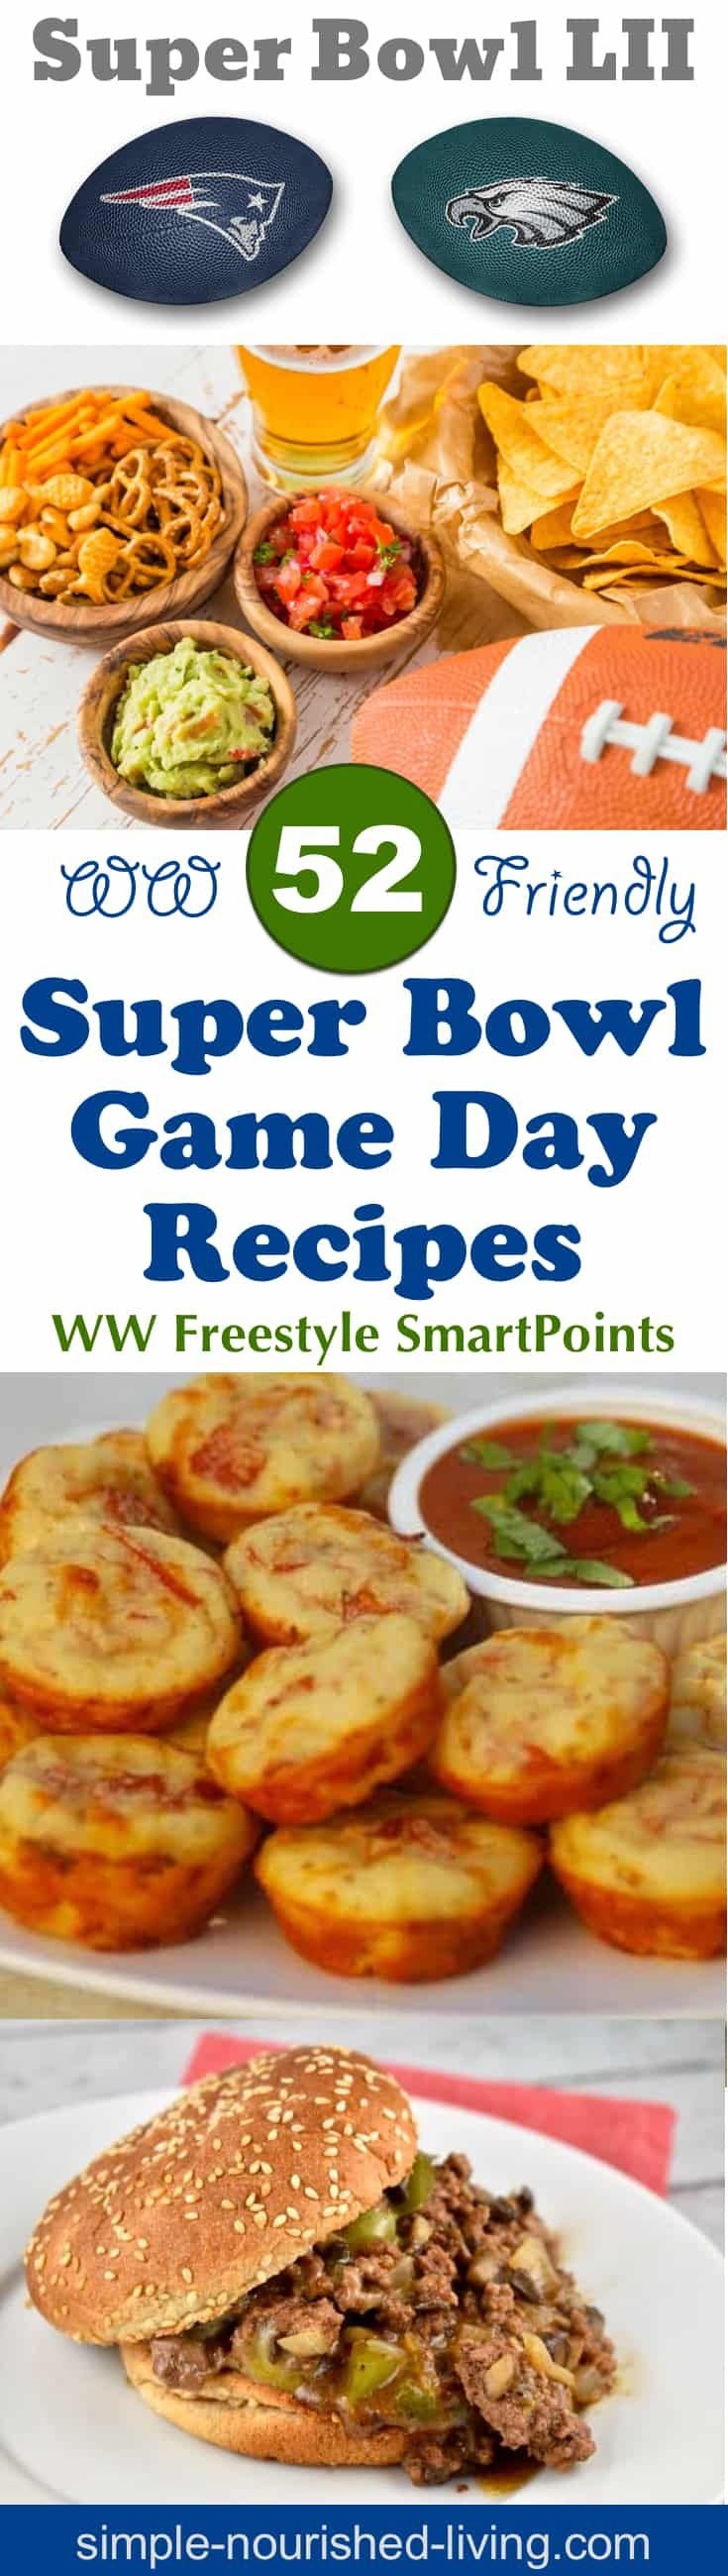 Favorite Weight Watchers Super Bowl Foods with WW Freestyle SmartPoints from the blogs you love!